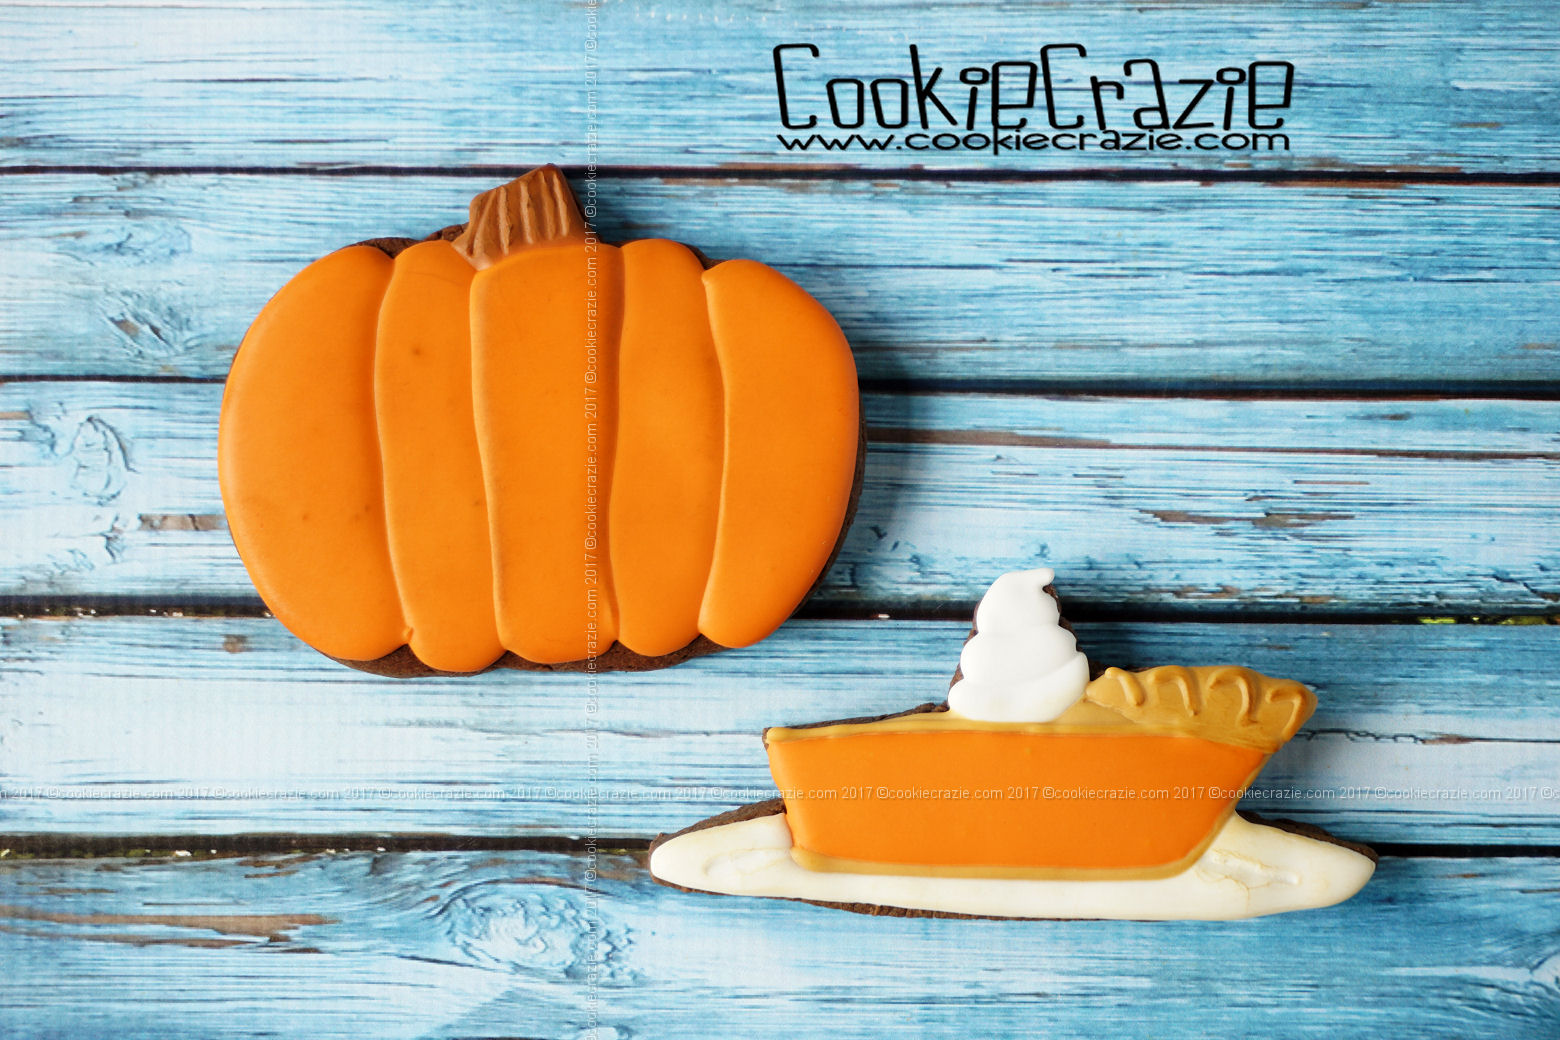 Pumpkin Pie Decorated Sugar Cookie YouTube Video  HERE